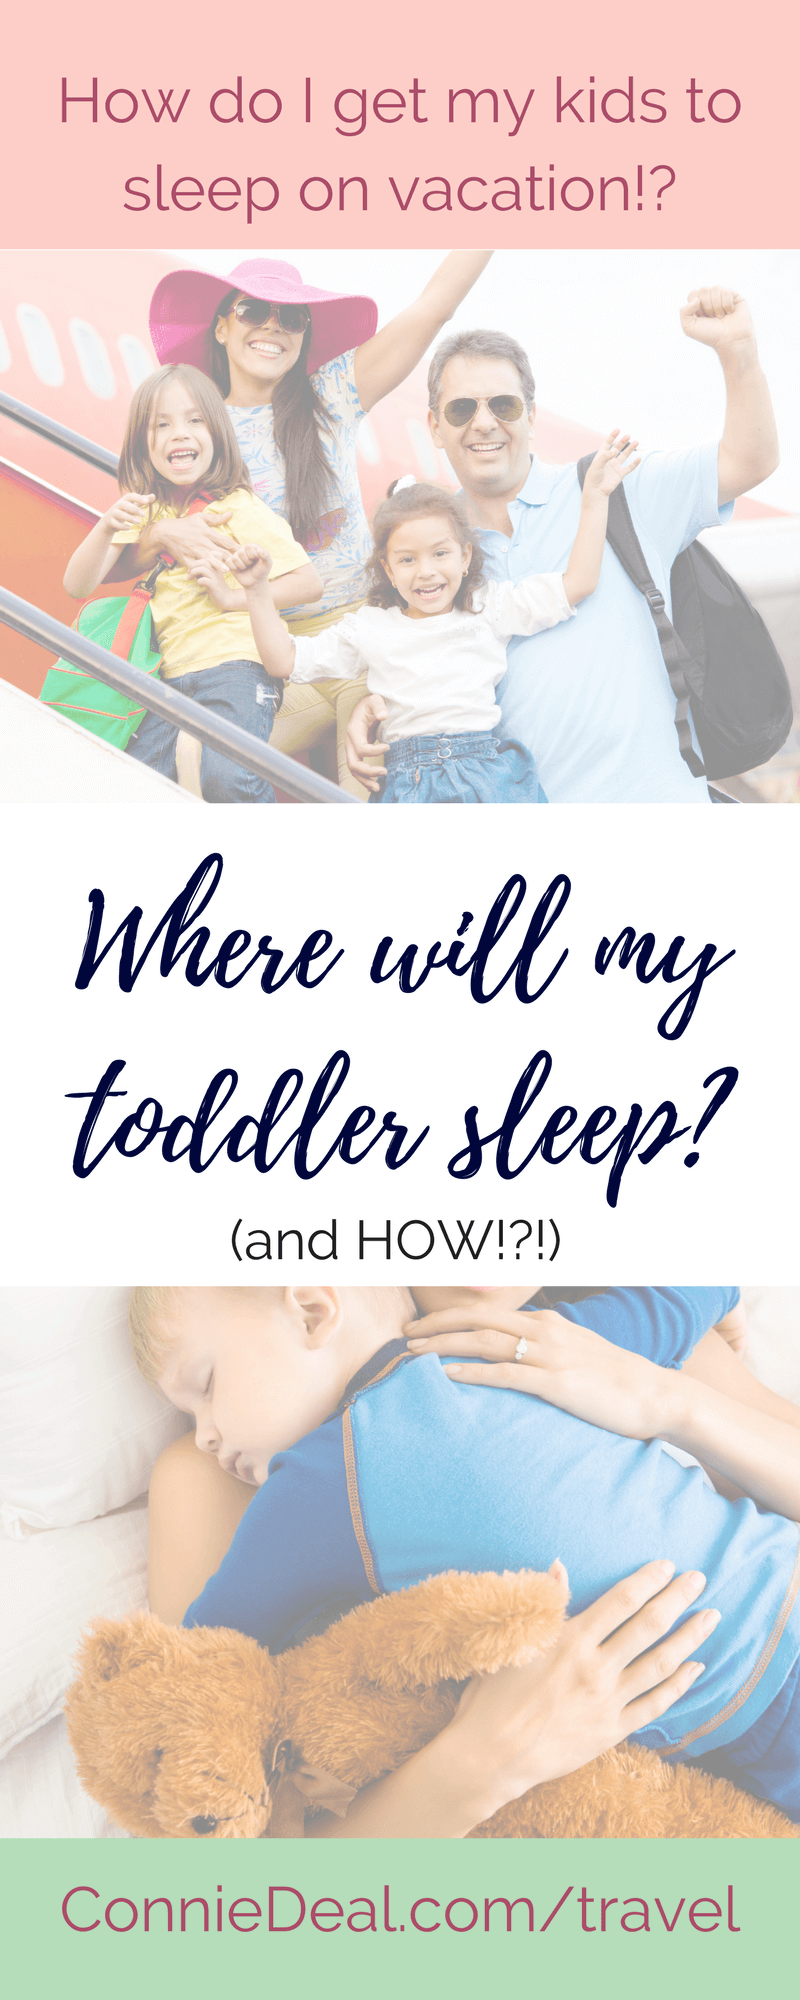 Going on vacation doesn't need to be the end of your toddler's sleep schedule or routine. It also doesn't NEED to be a battle to get your baby or toddler to take a nap or go to bed while you're traveling. How can you go sight-seeing and explore new areas and not give up #naptime? Click through to learn #sleeptips for traveling toddlers from ConnieDeal.com/travel. #travel #travelingtoddlers #vacation #travelingwithtoddlers